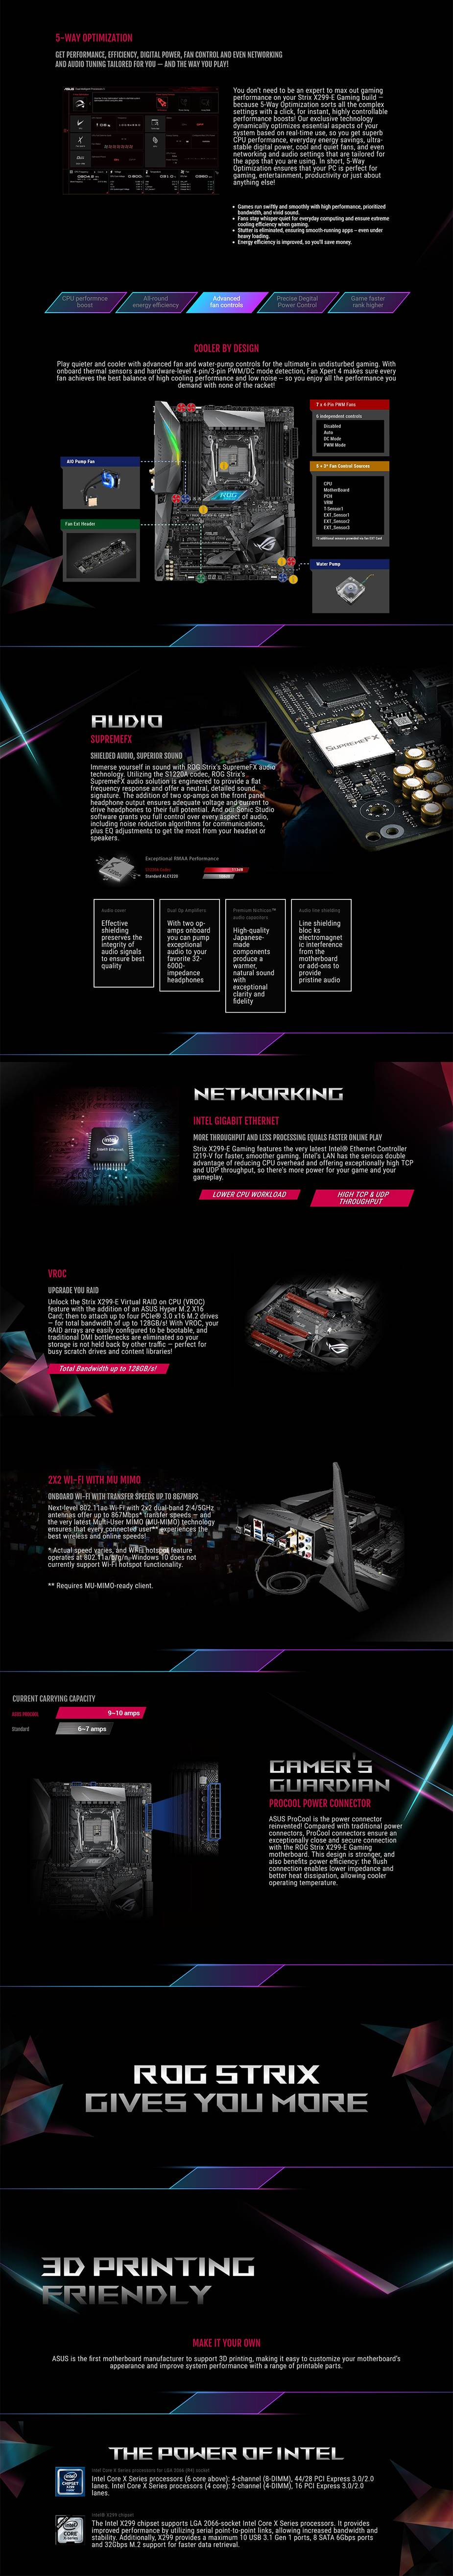 ASUS ROG STRIX X299-E GAMING 2066 ATX Motherboard | ARC Computers